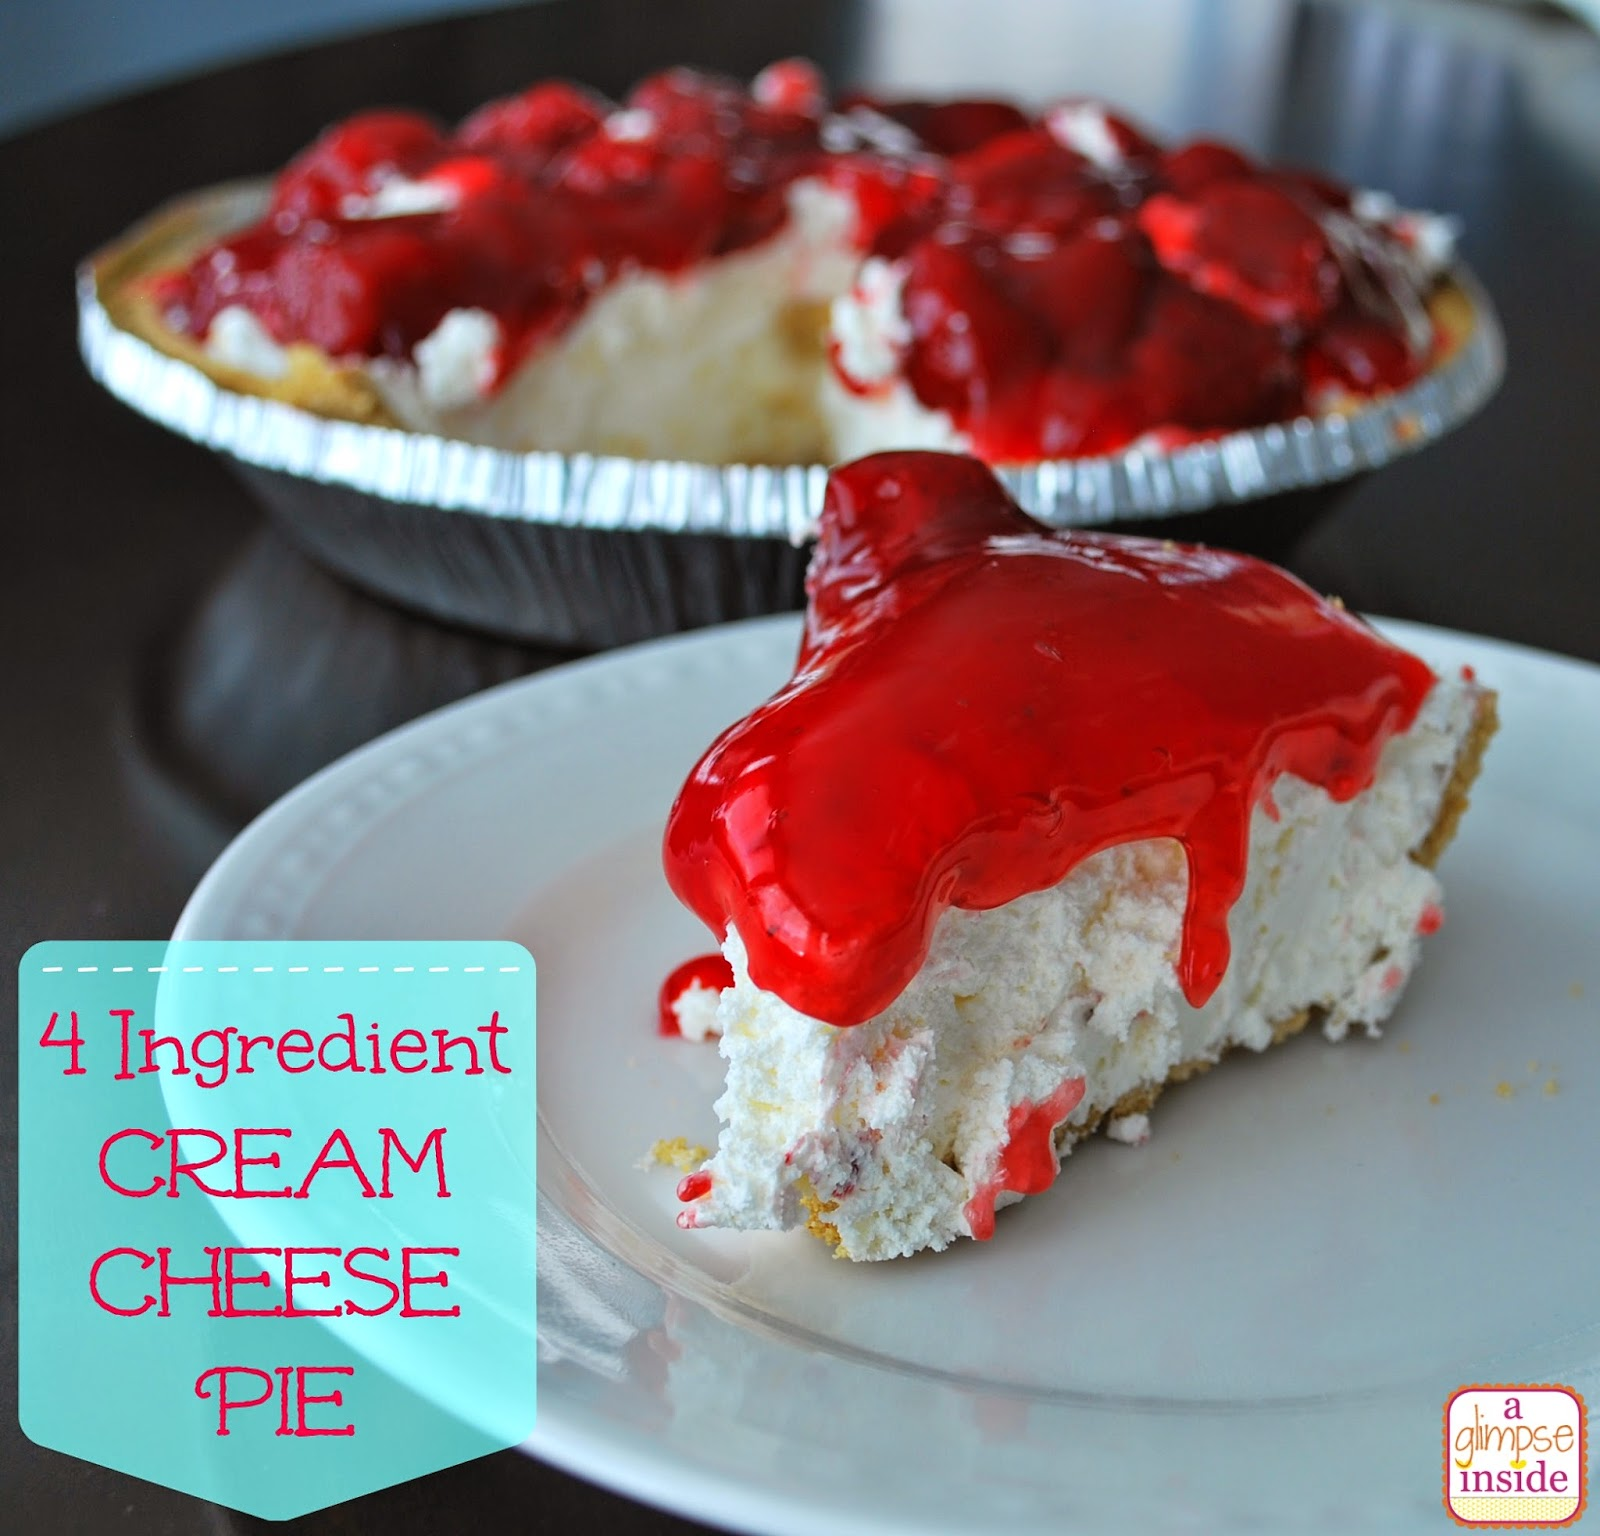 http://www.aglimpseinsideblog.com/2014/04/easy-4-ingredient-cream-cheese-pie.html